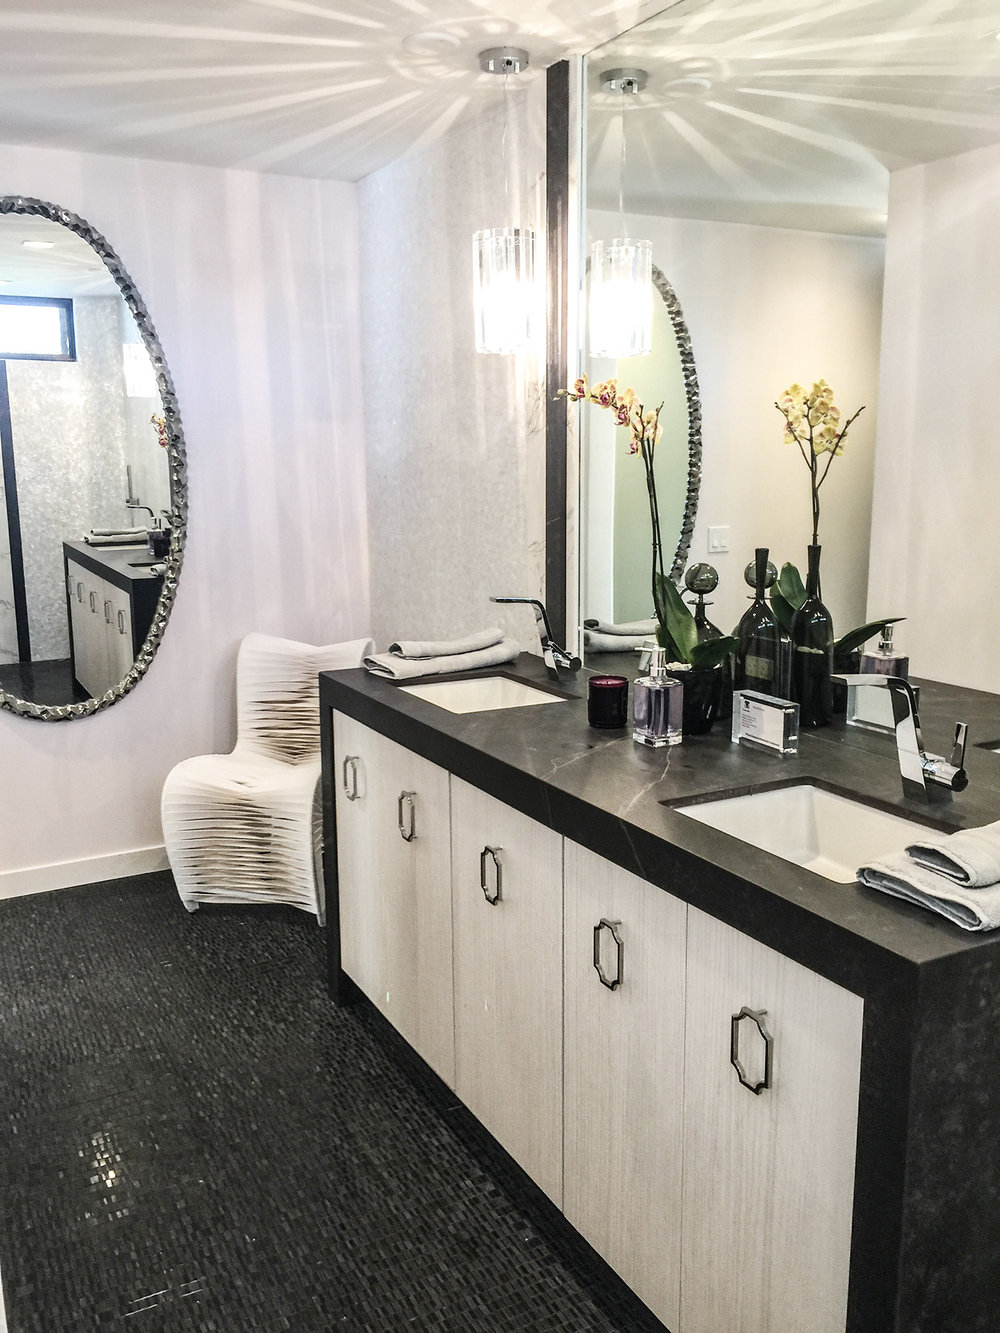 M  emphis Mirror  in a room designed by  Justin Shaulis Inc  at the  Christopher Kennedy Compound